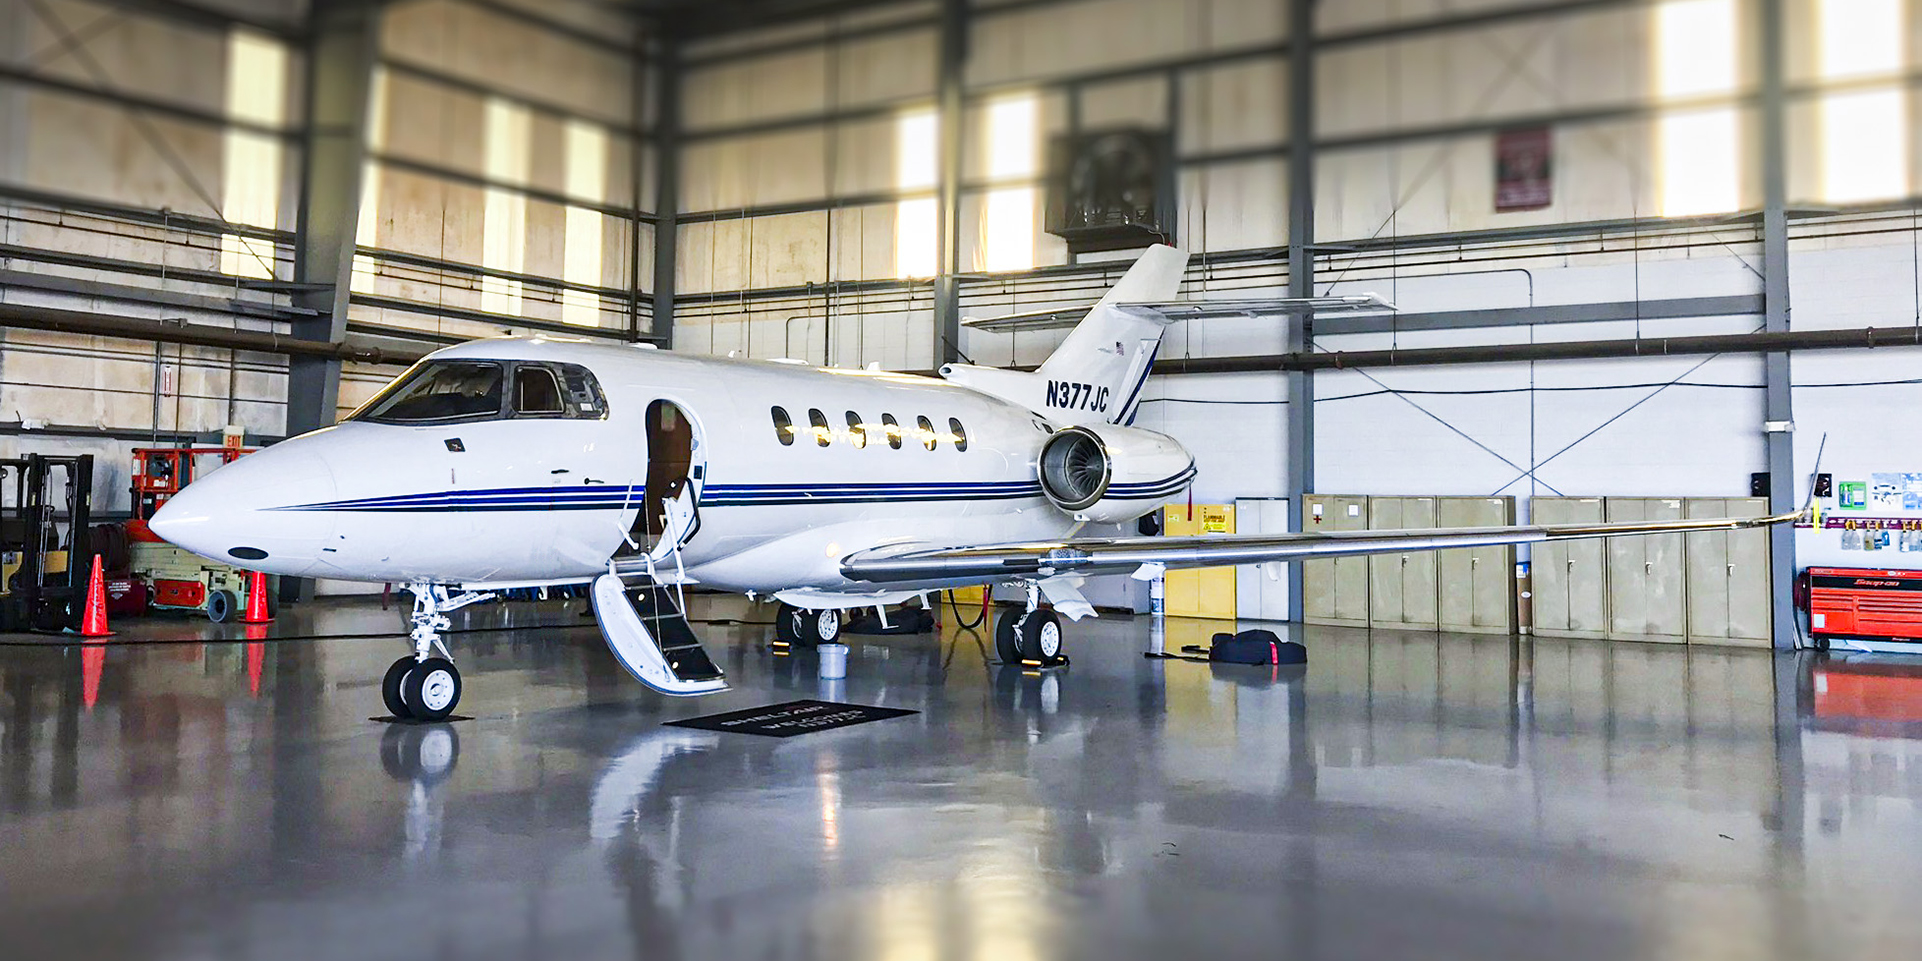 Hawker private jet charter Hawker business jet Hawker corporate jet Hawker charter1 - Hawker private jet builder Hawker private charter and Hawker jet broker